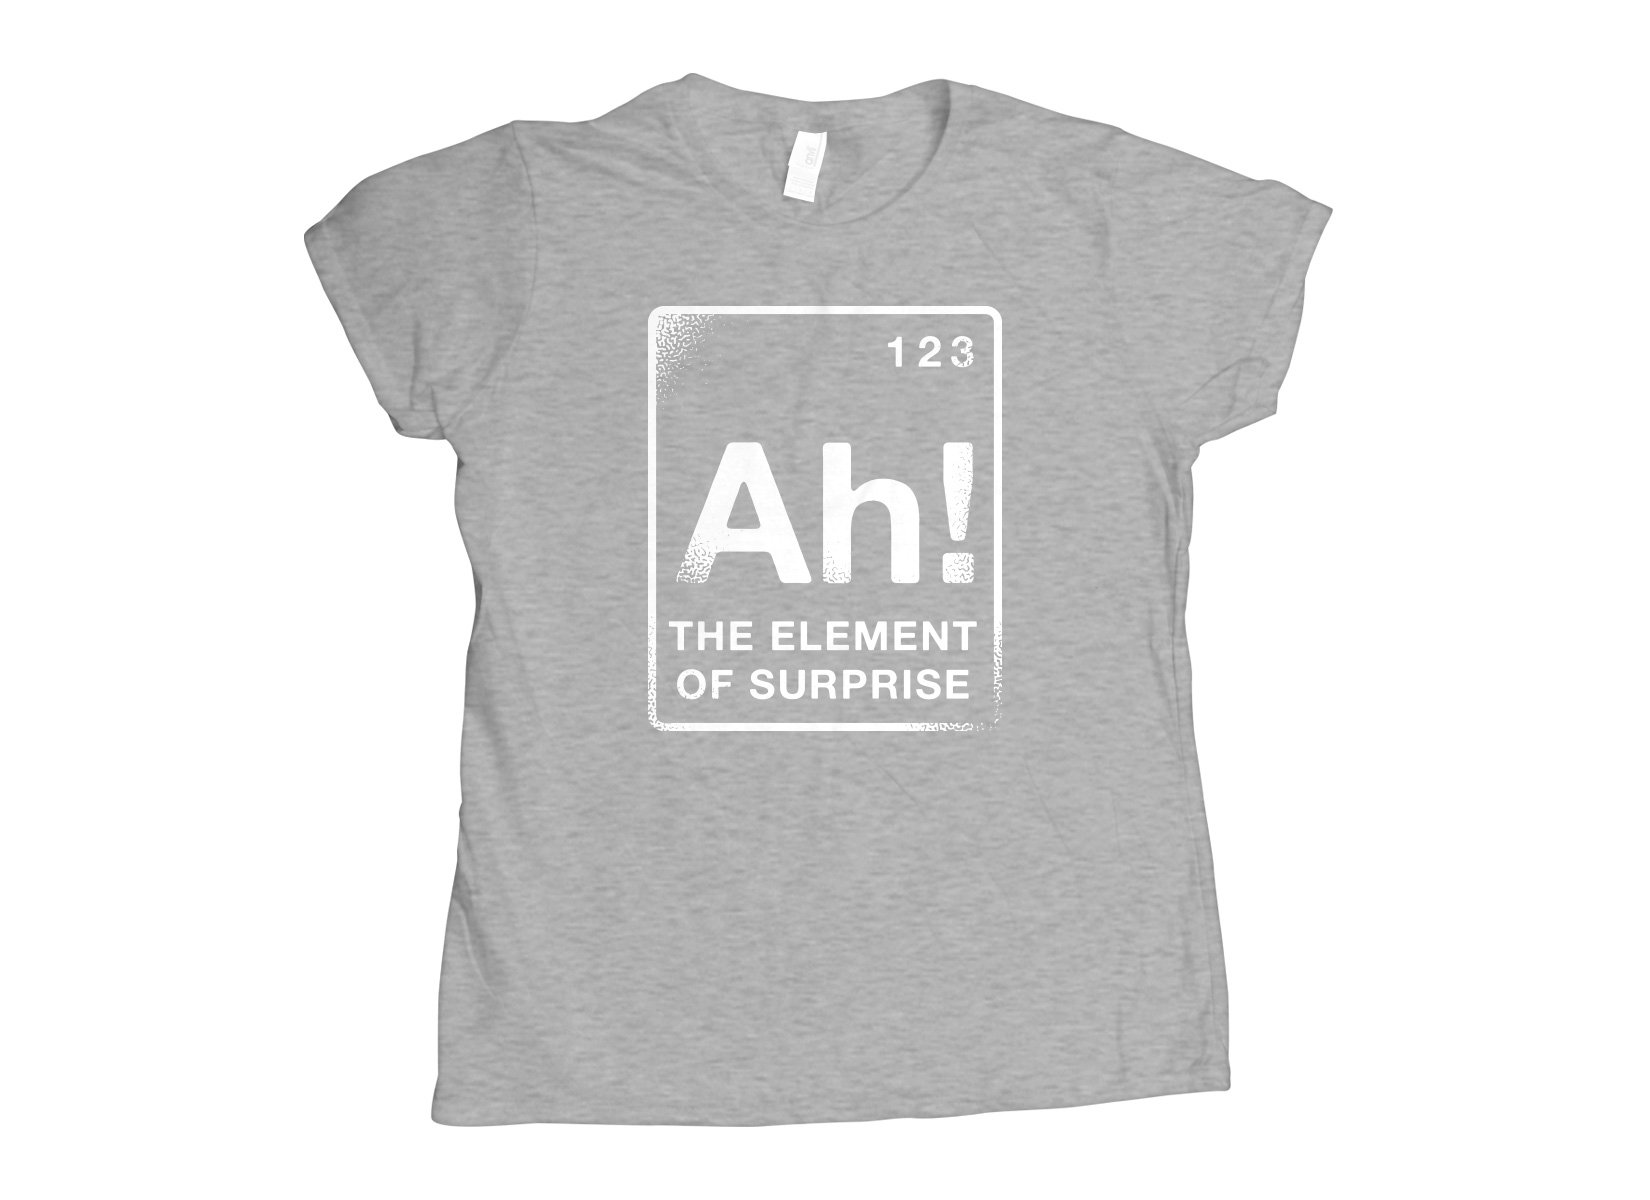 The Element Of Surprise on Womens T-Shirt